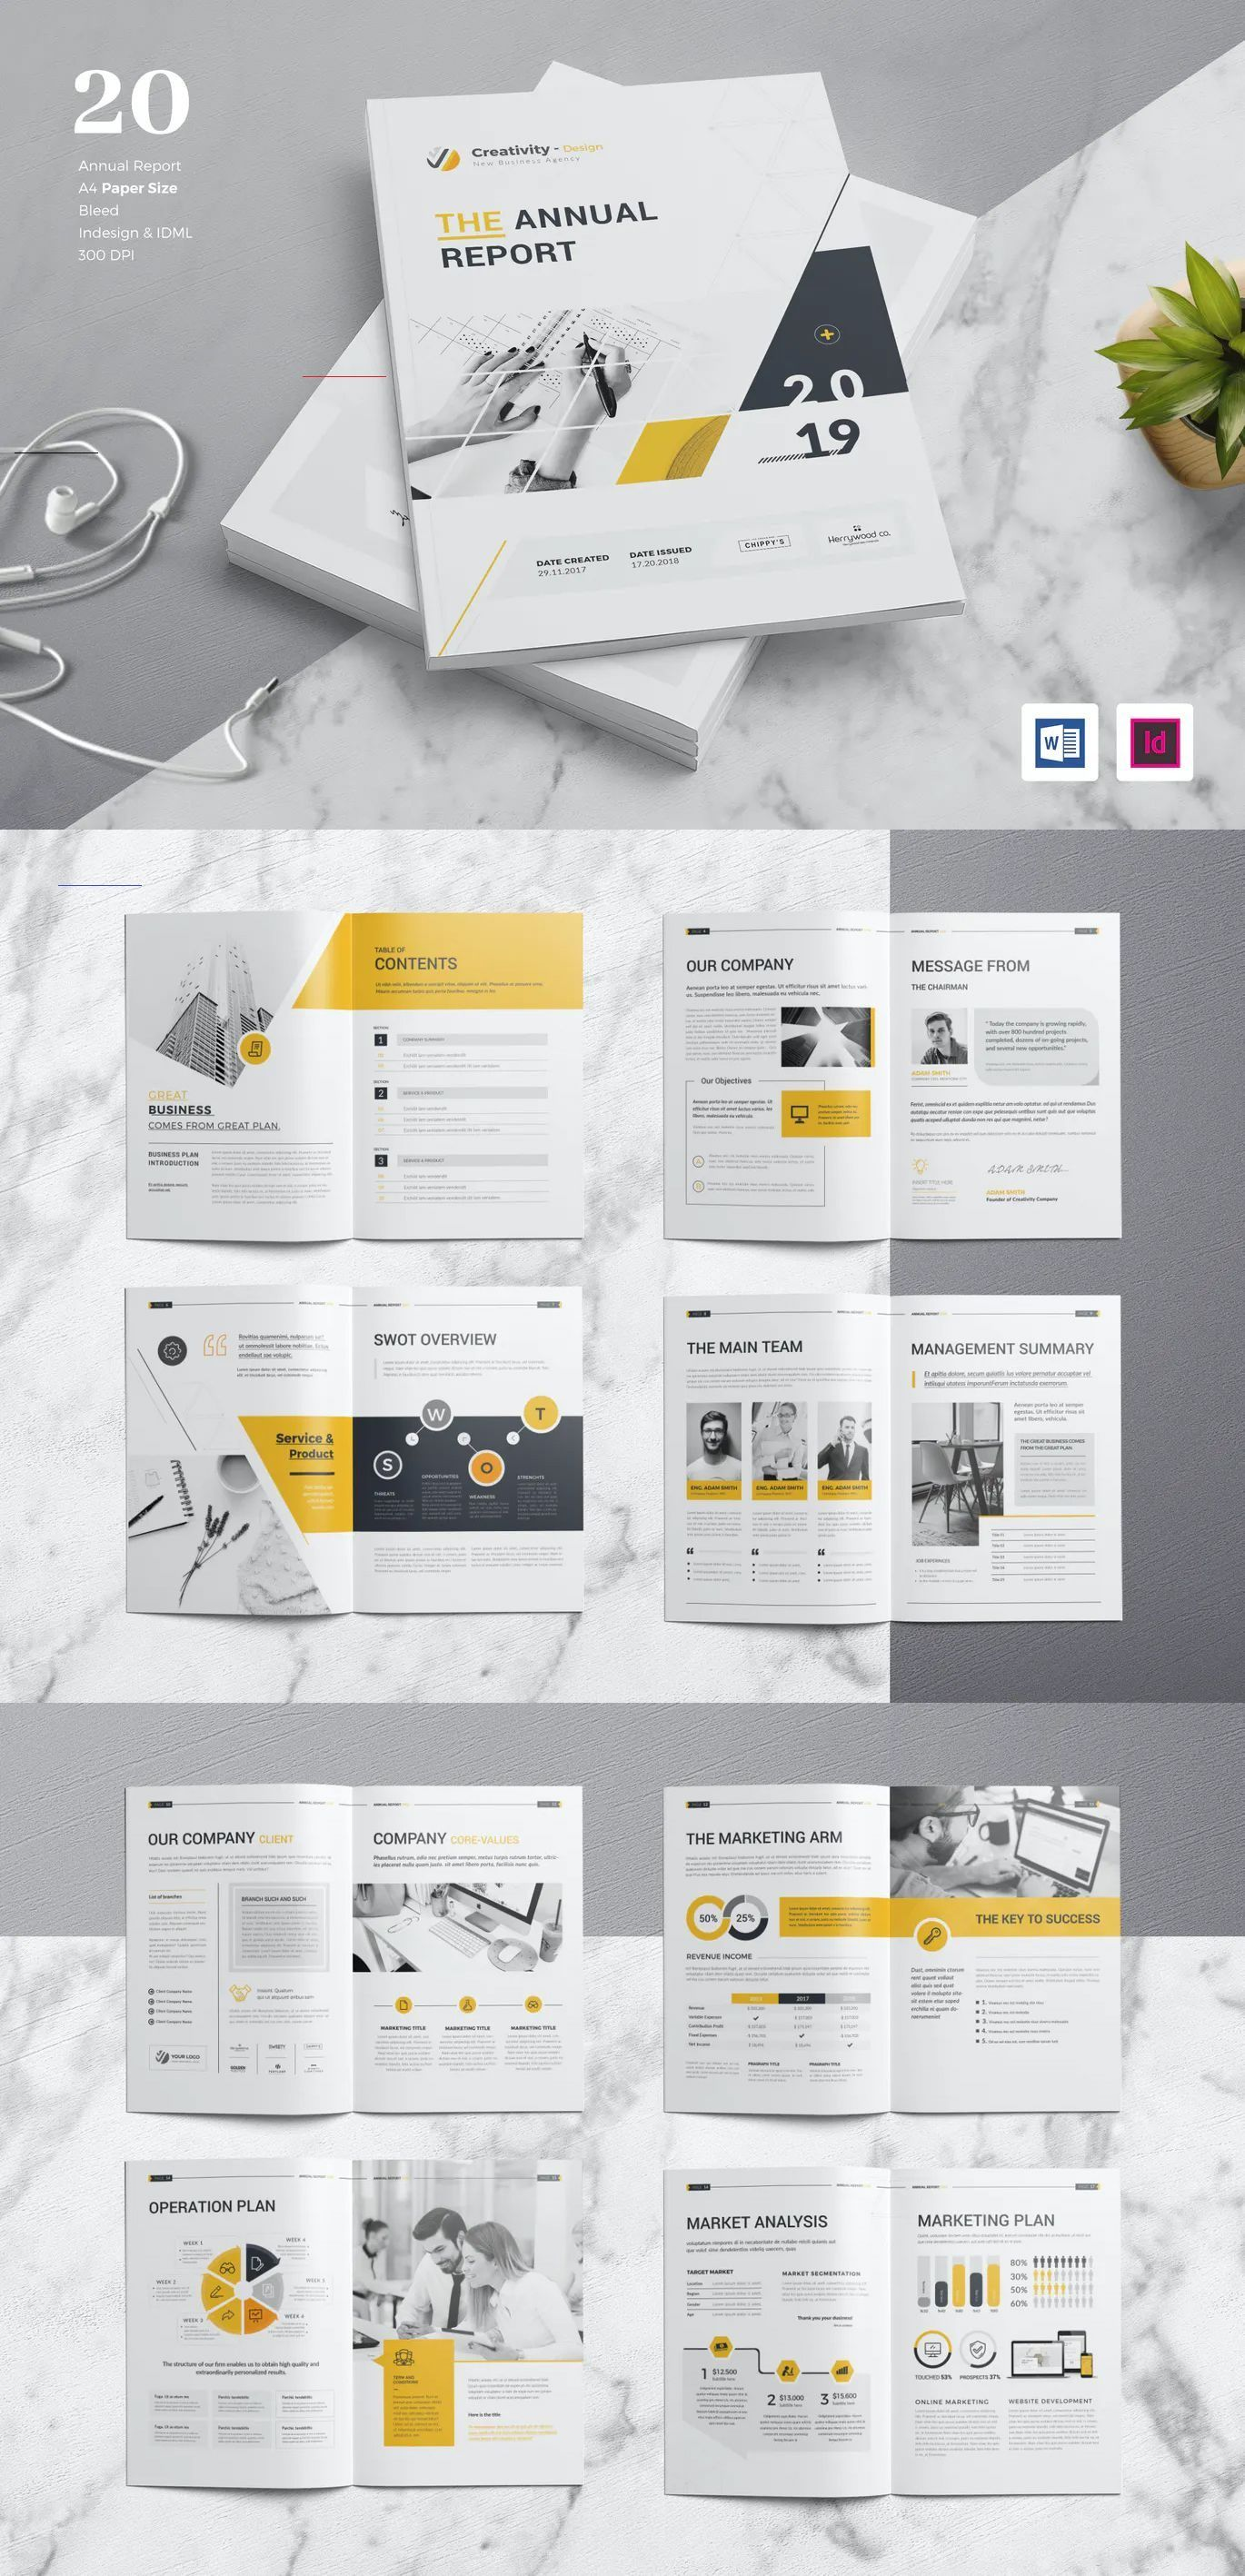 Annual Report Template Indesign Indd Annualreports Download Annual Report Graphic Templates By Cre Annual Report Design Annual Report Layout Annual Report